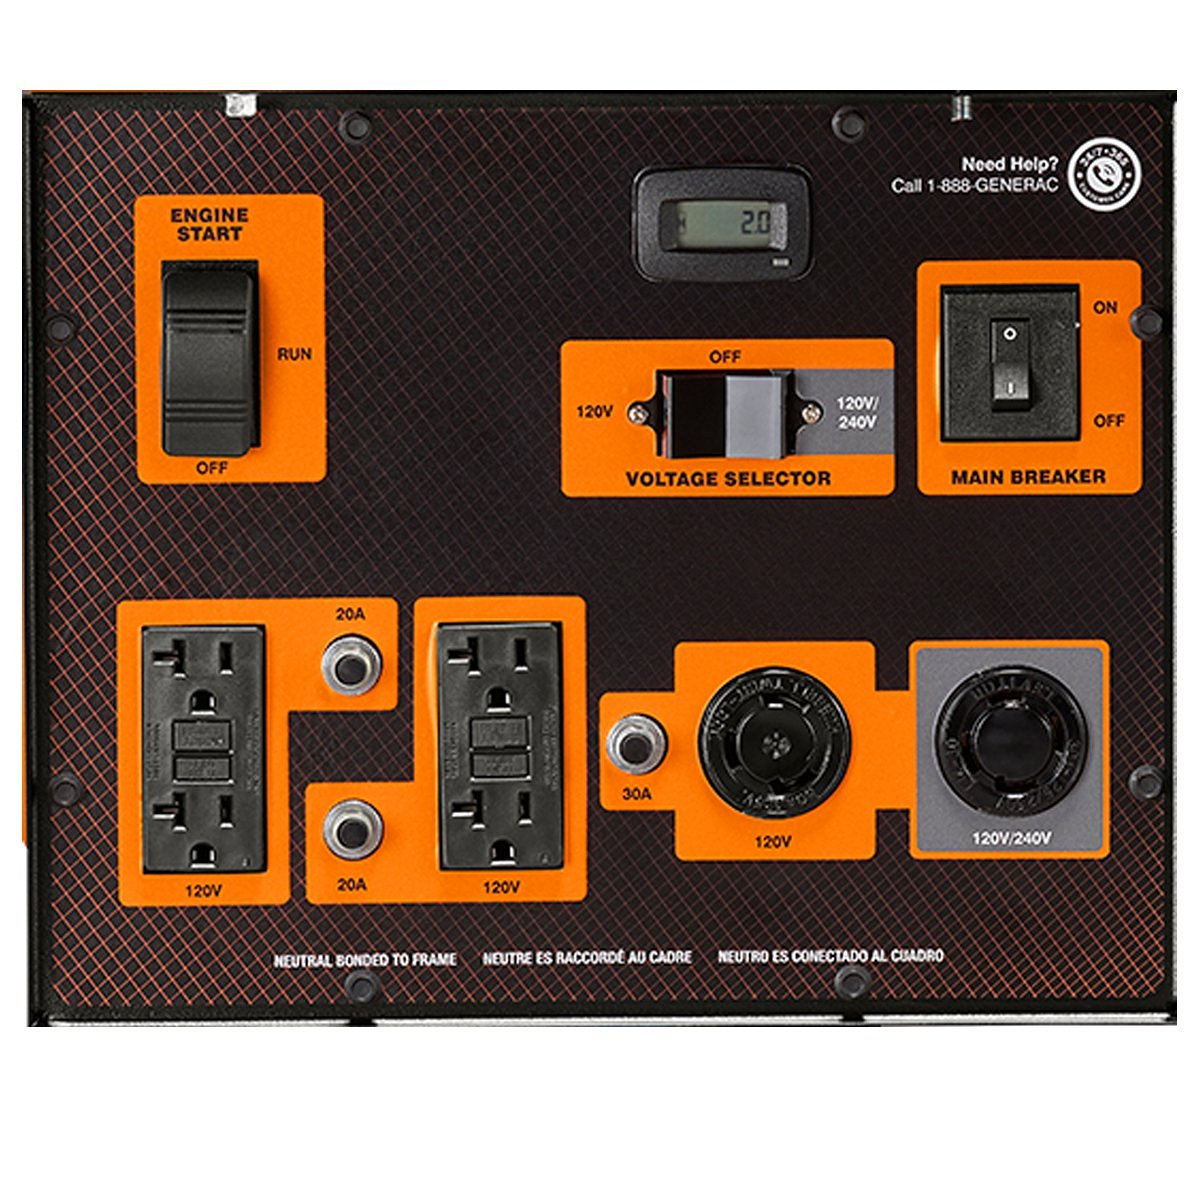 Generac 6864 connectivity